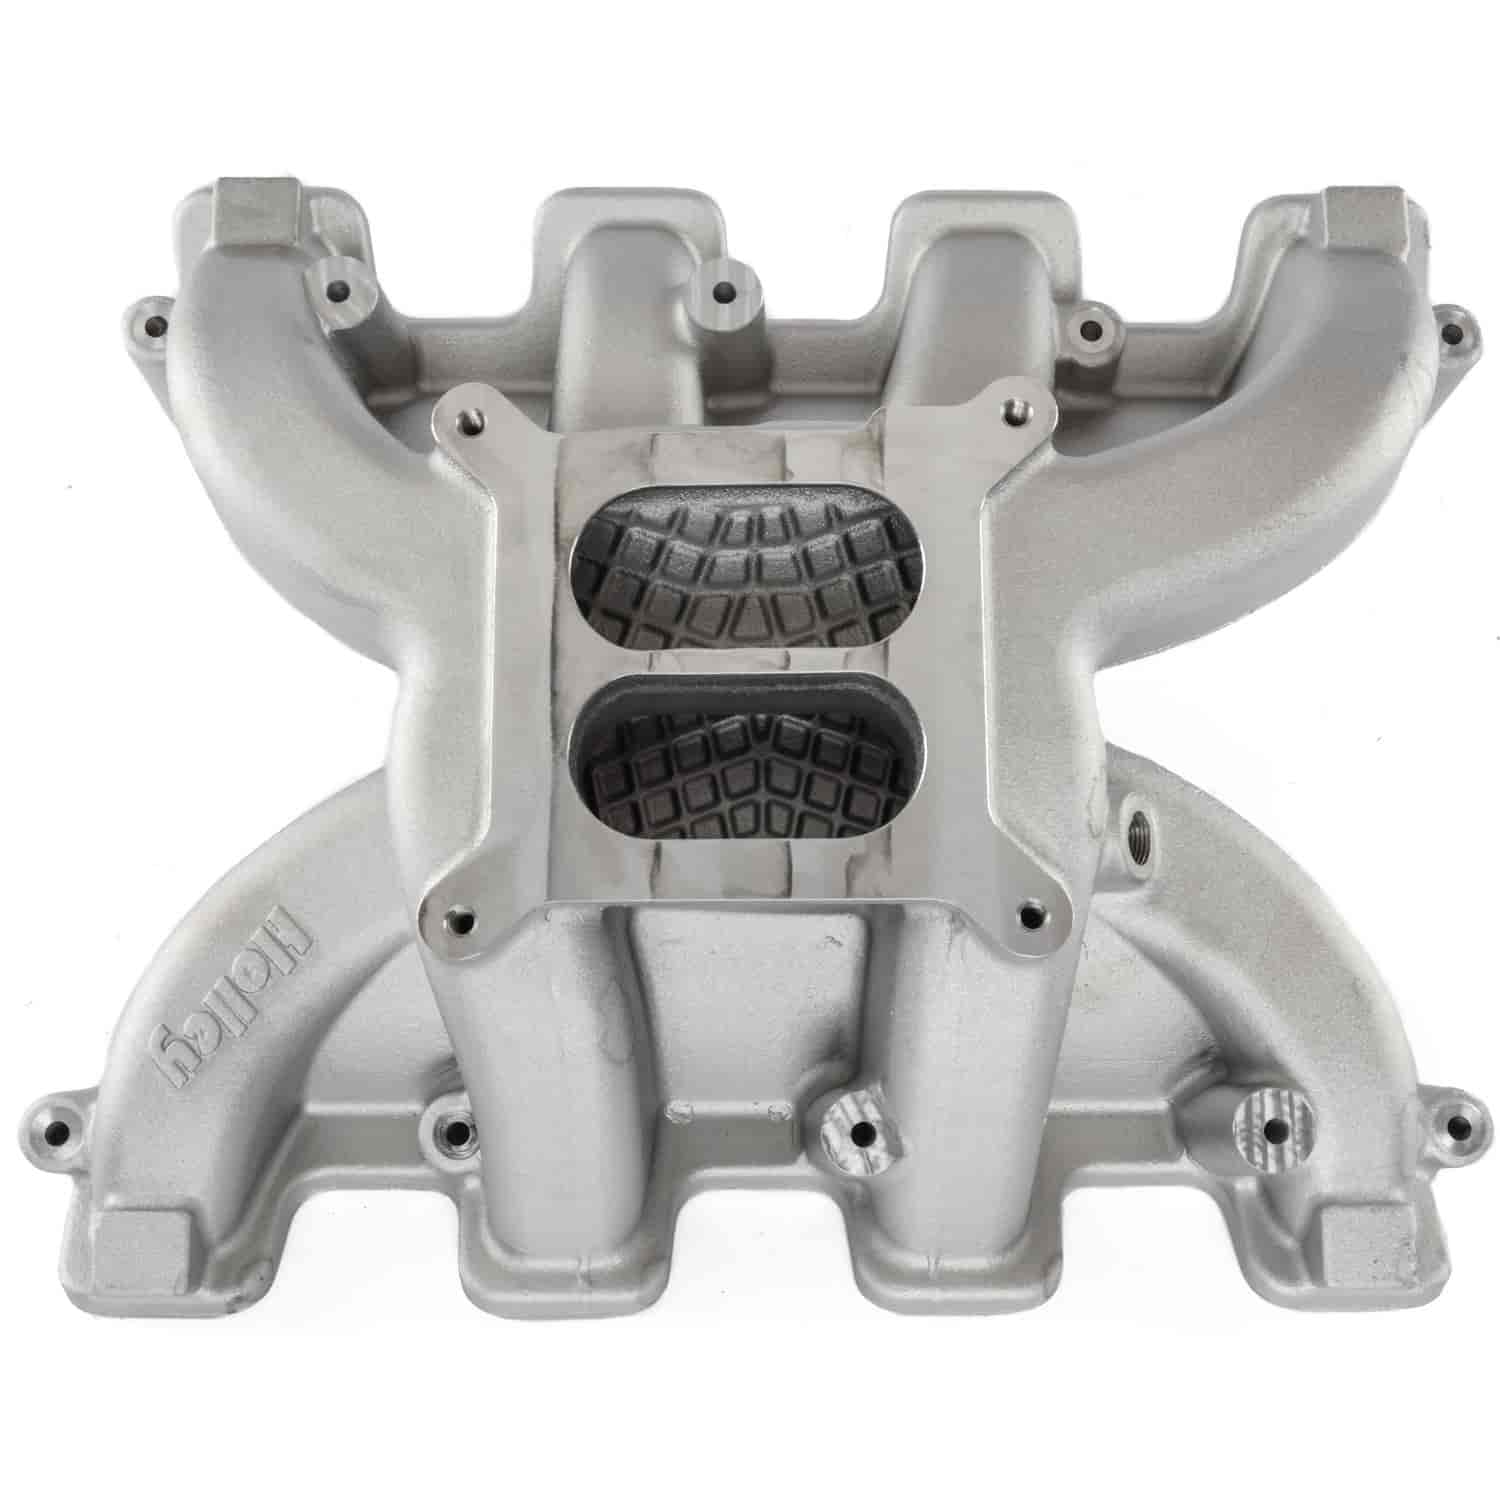 Holley 300 129 Dual Plane Mid Rise Intake Manifold GM LS3 L92